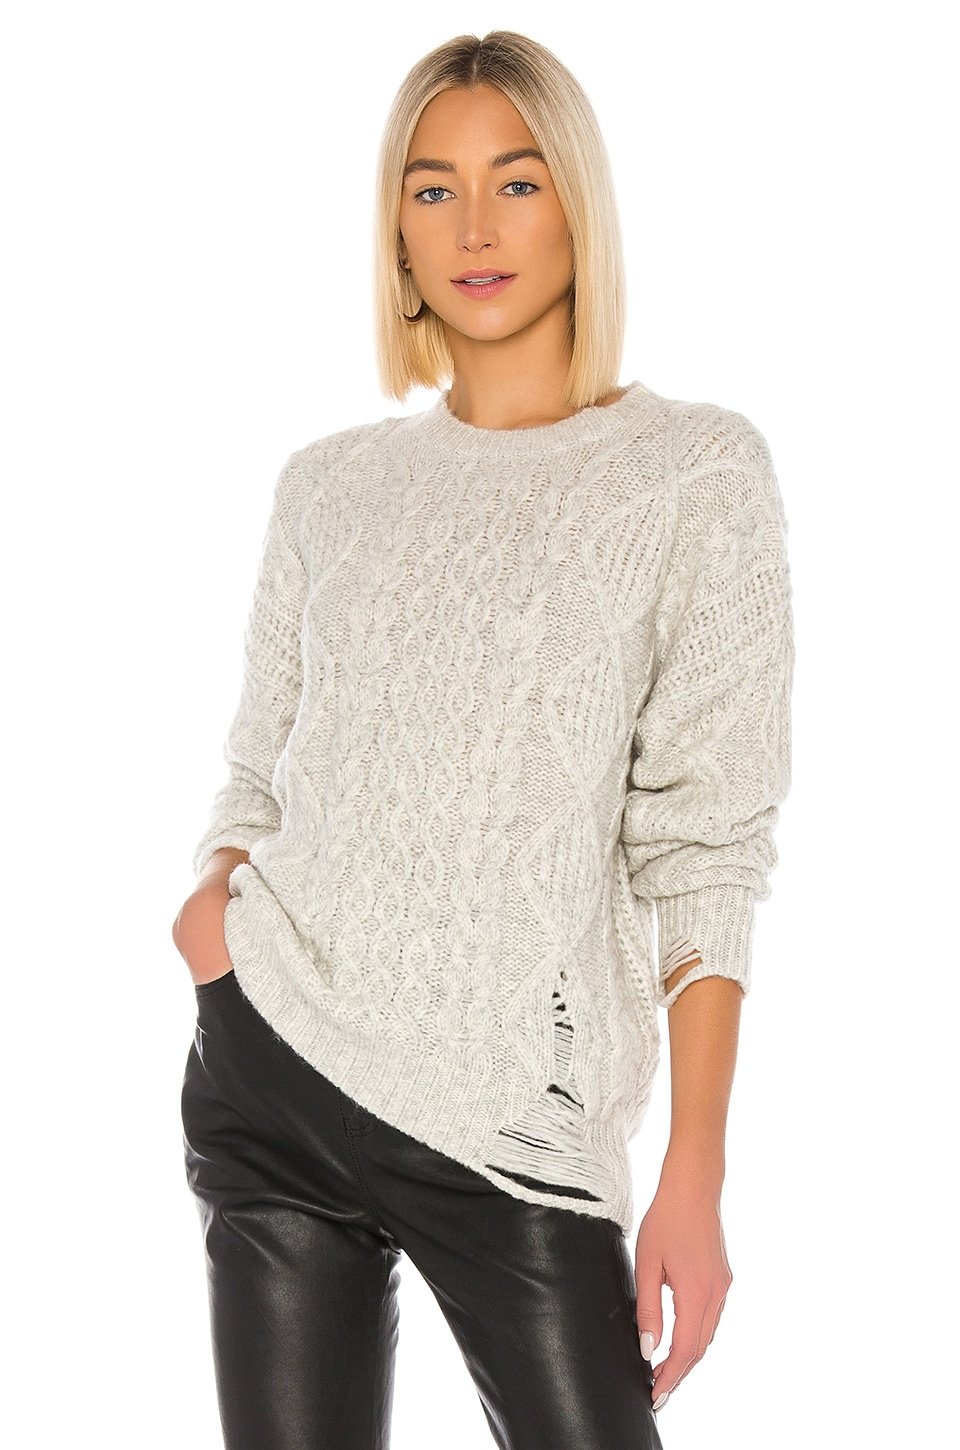 NSF Anabell Crew Neck Sweater in Light Heather Grey